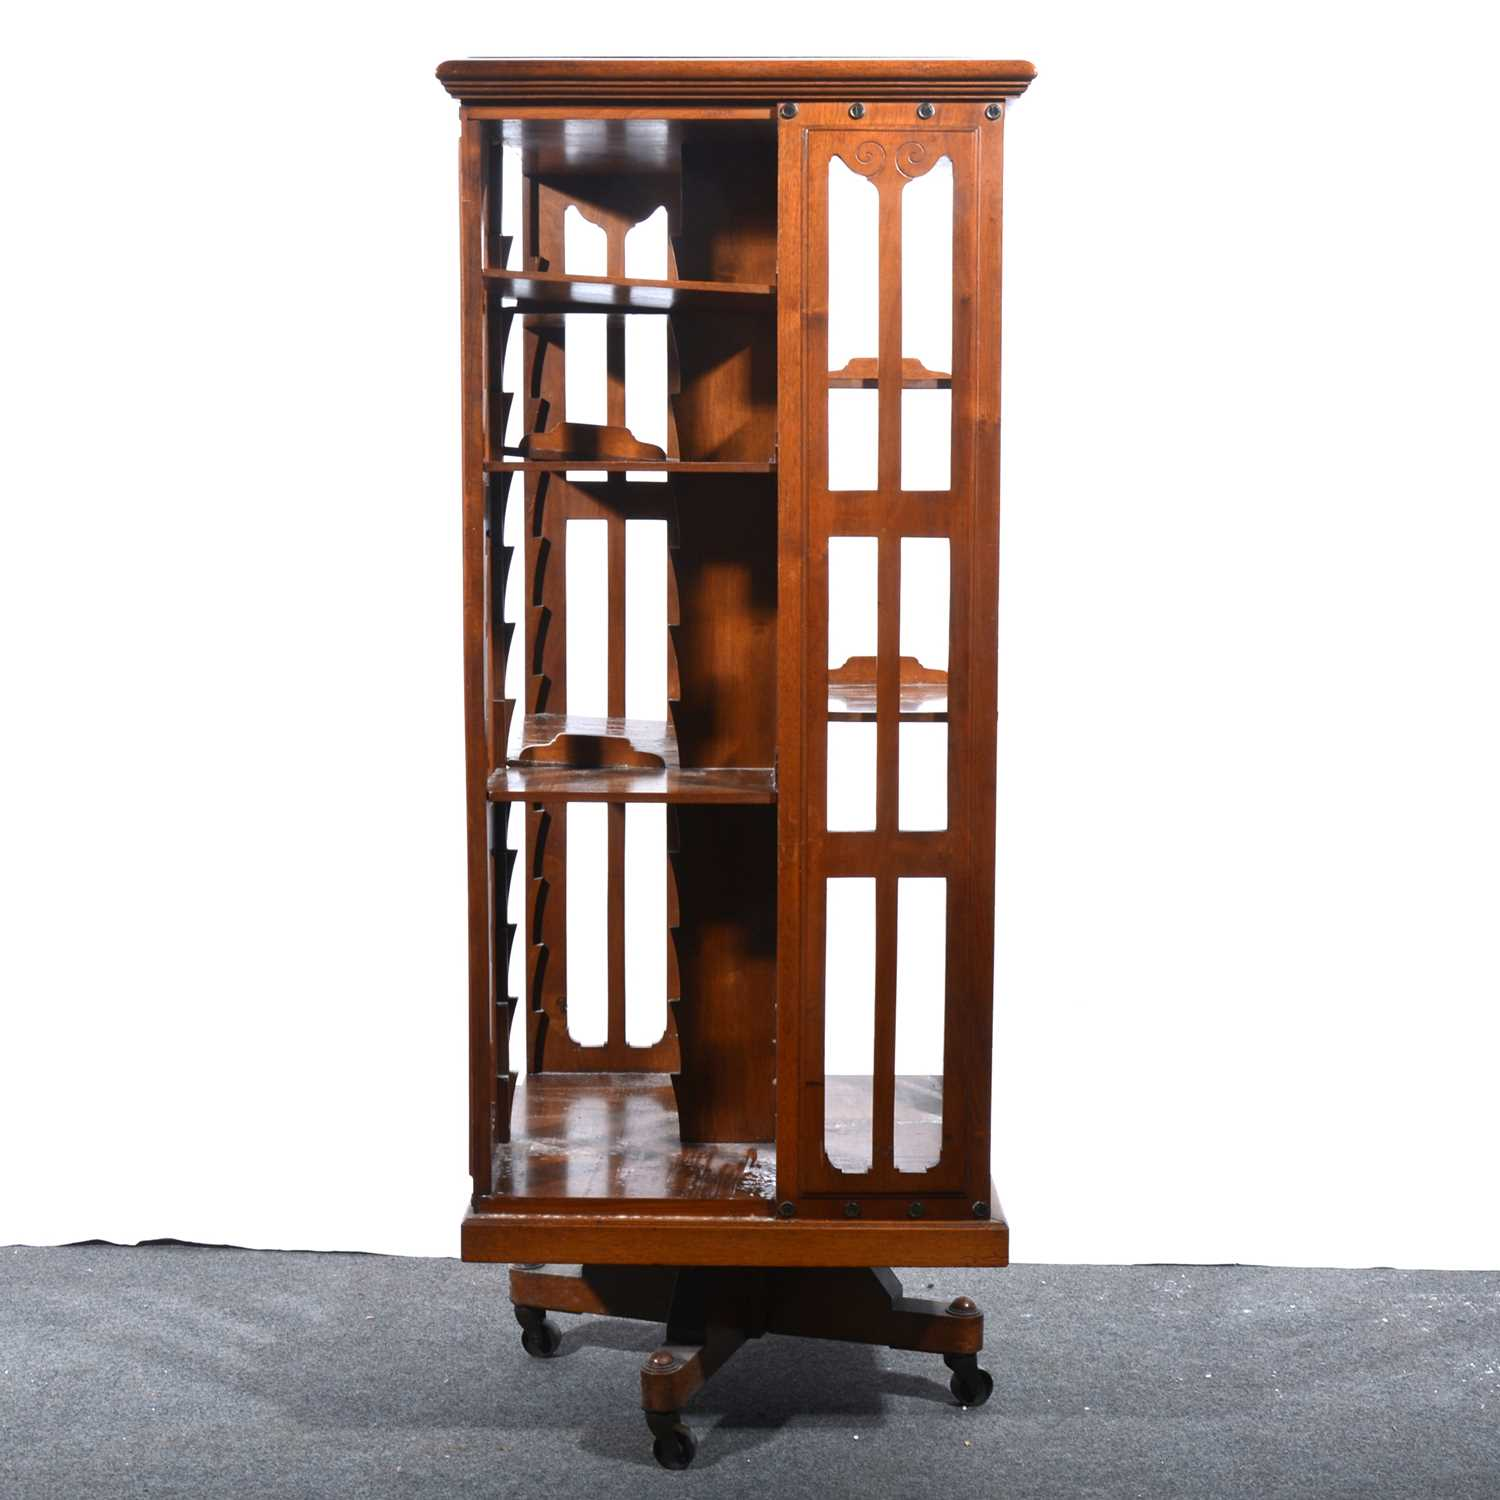 Lot 46 - An Edwardian walnut revolving bookcase.